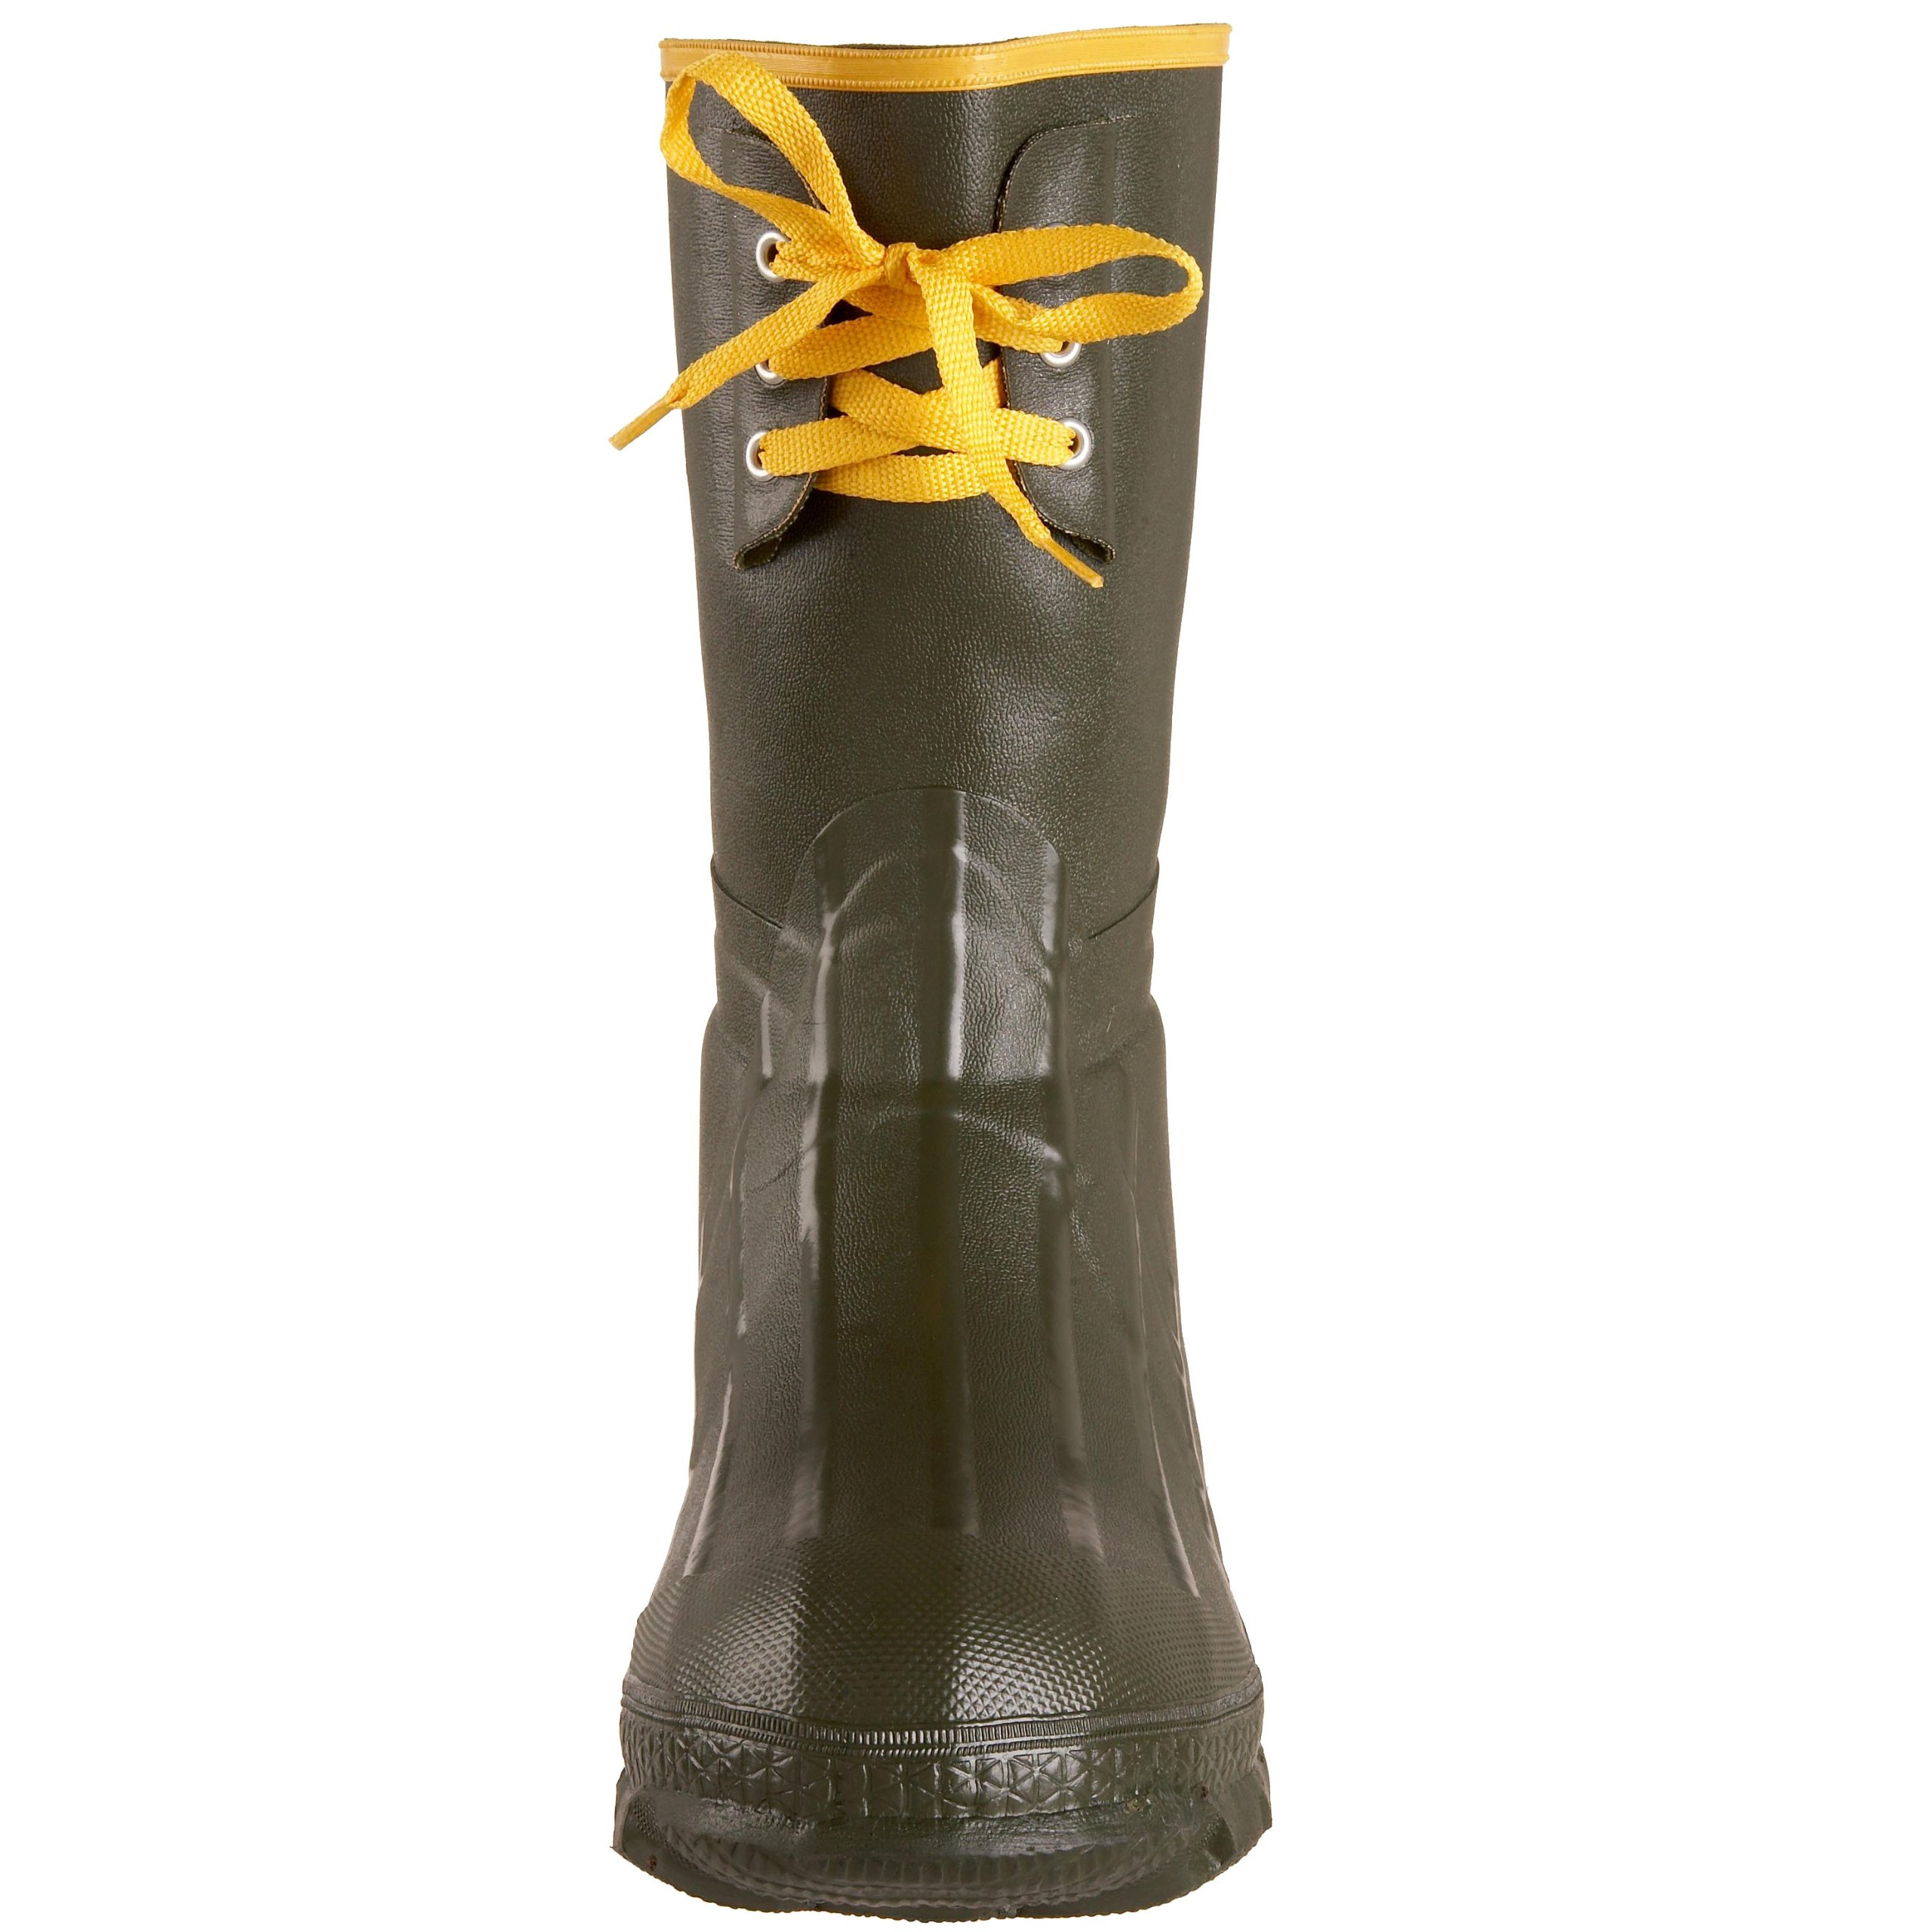 LaCrosse Men's 12'' Insulated Pac Mid-Calf Boot,Olive Drab Green,7 M US by Lacrosse (Image #4)